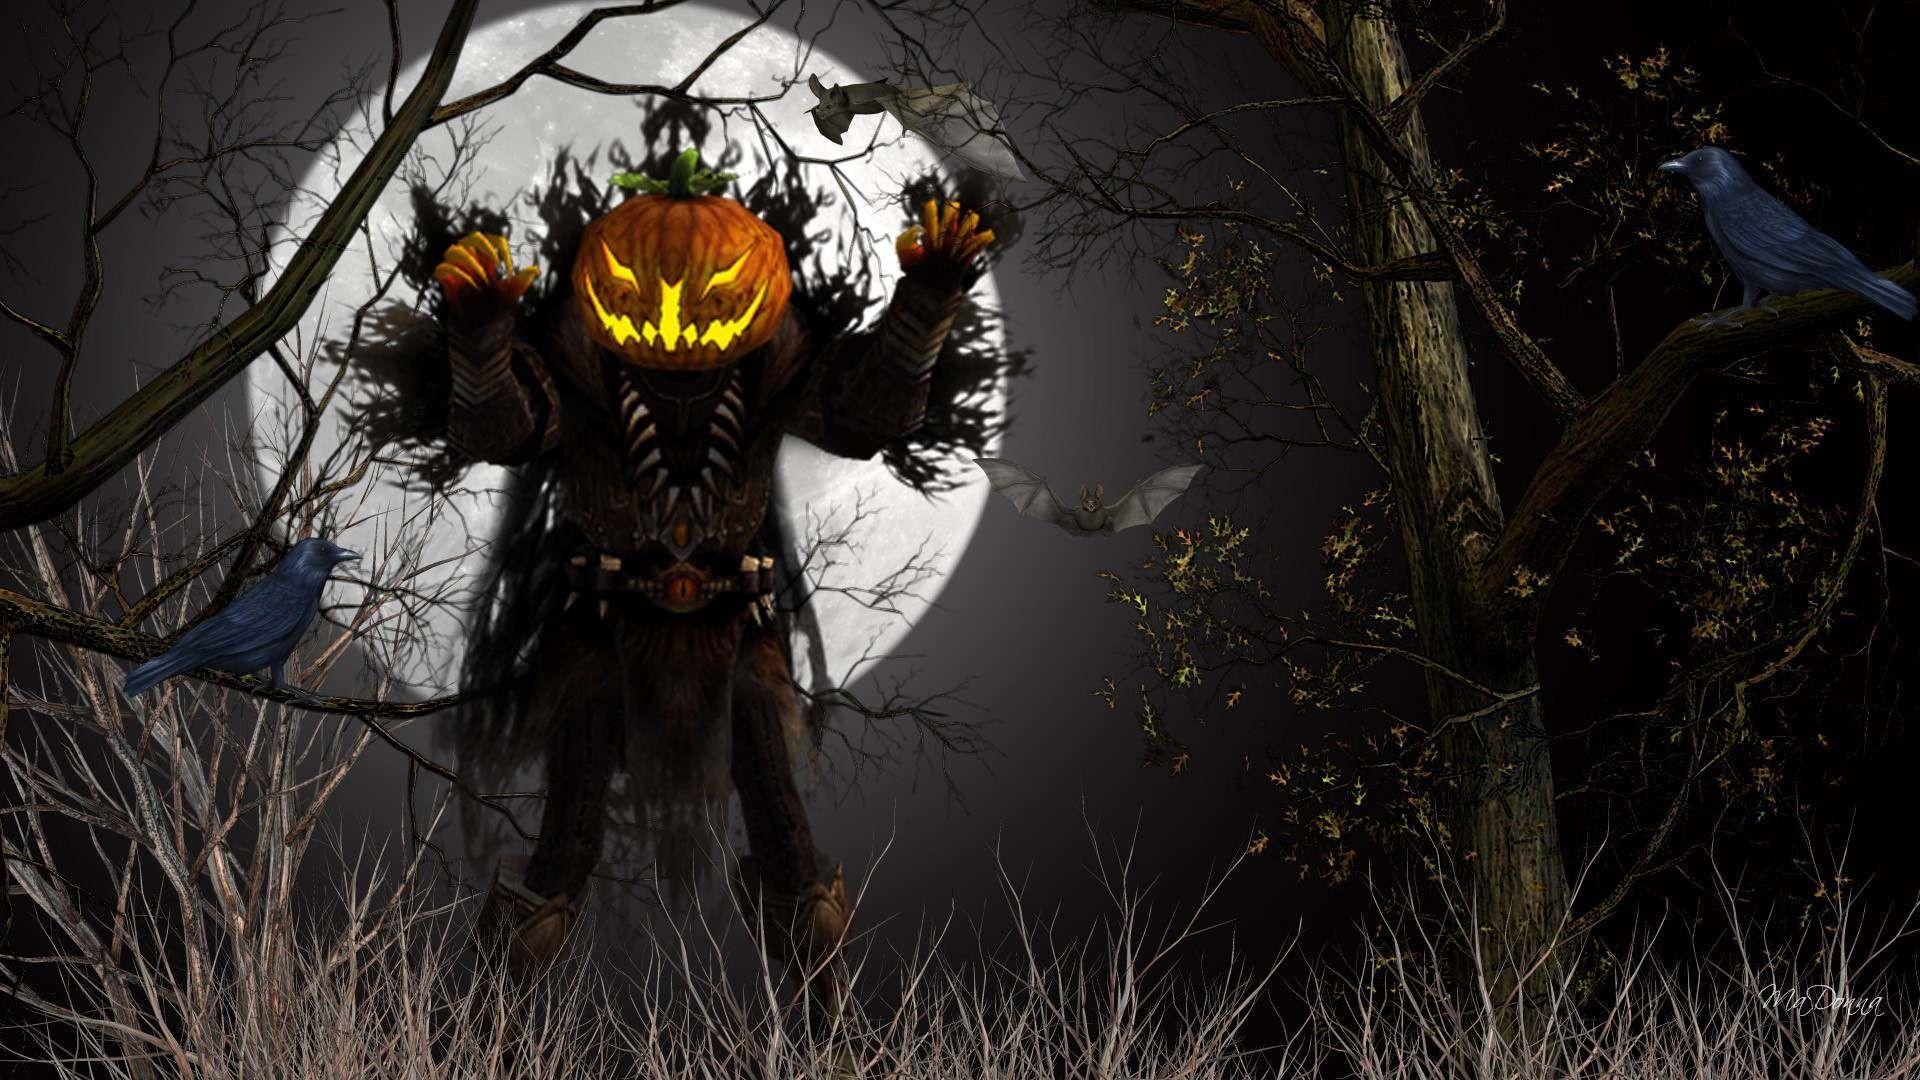 Scary Halloween Desktop Wallpapers - Top Free Scary ...